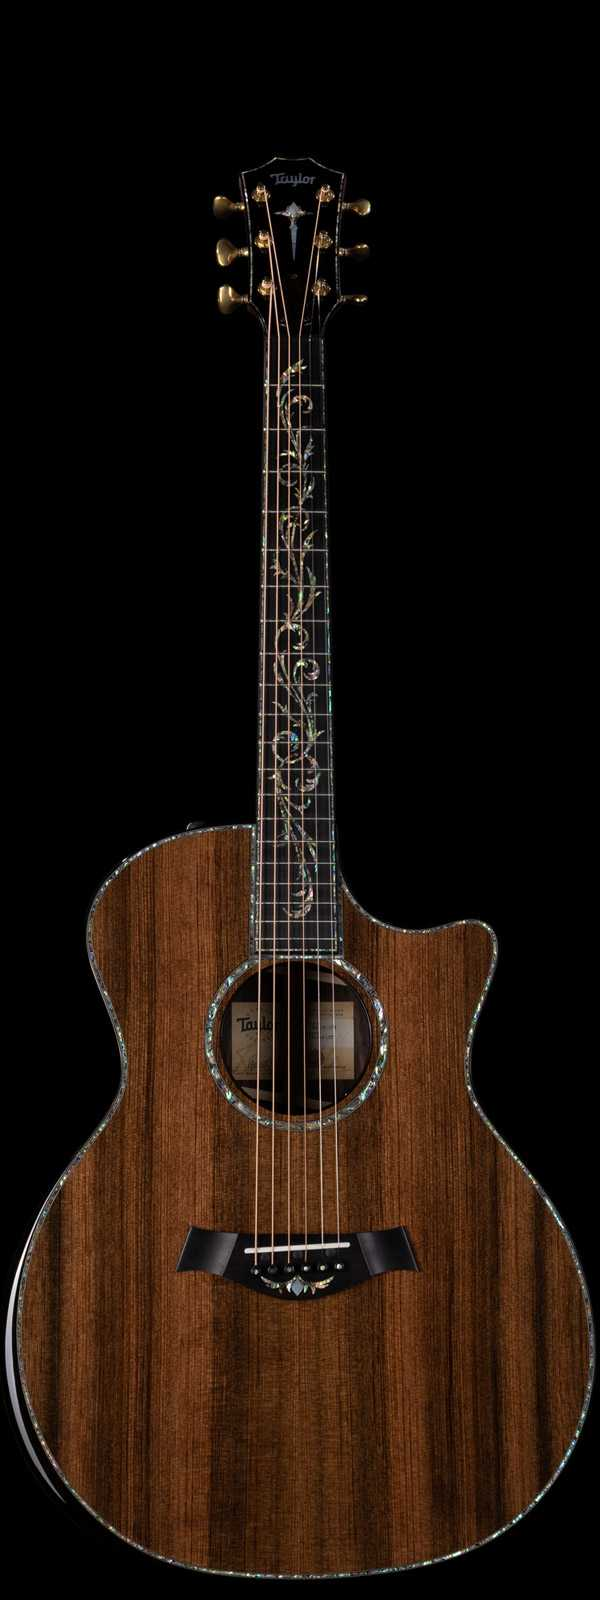 Taylor PS14ce LTD Presentation Series Acoustic-Electric Sinker Redwood Top Natural